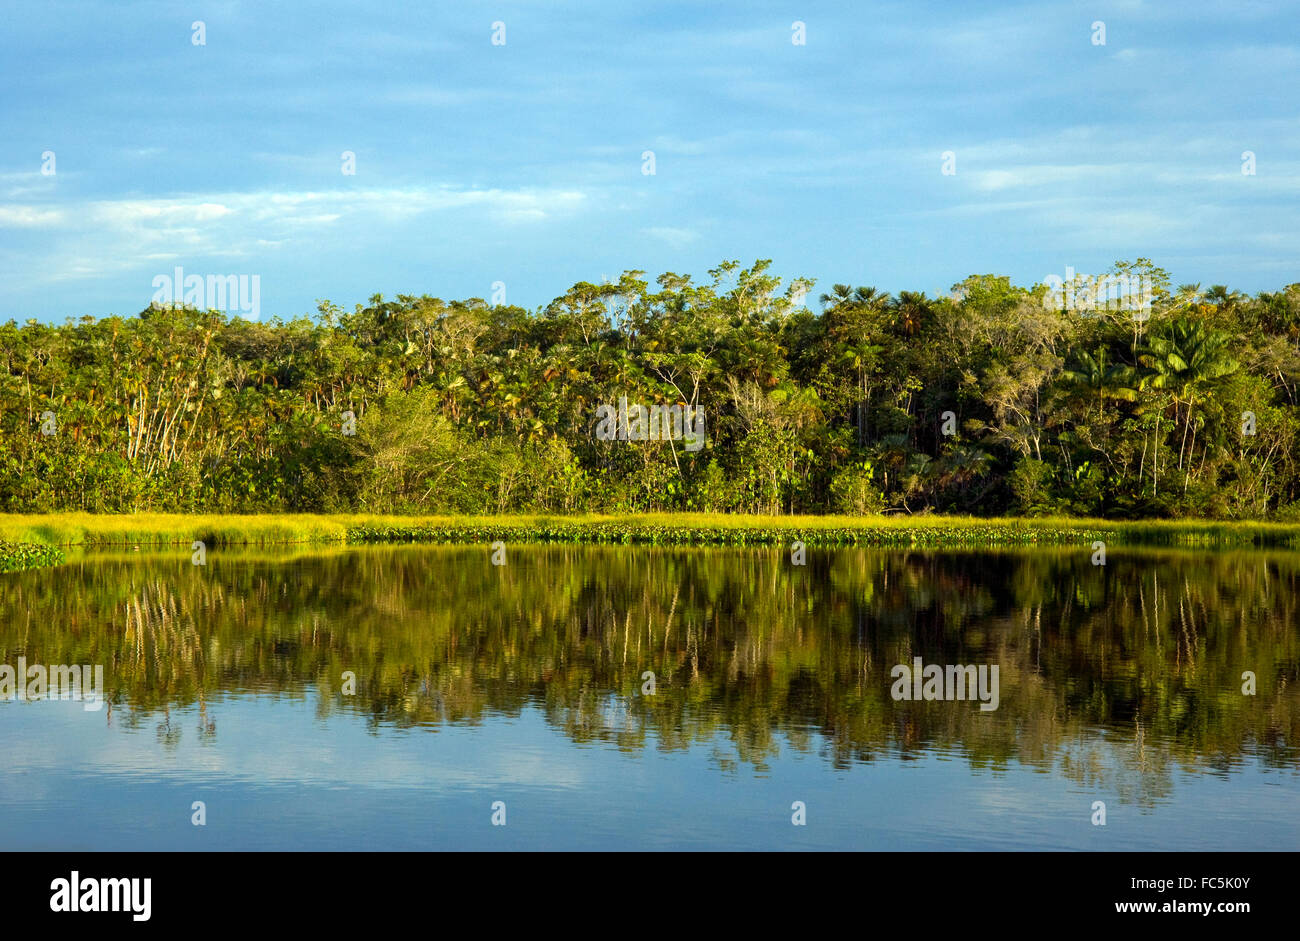 Reflections on the Amazon river in Ecuador - Stock Image